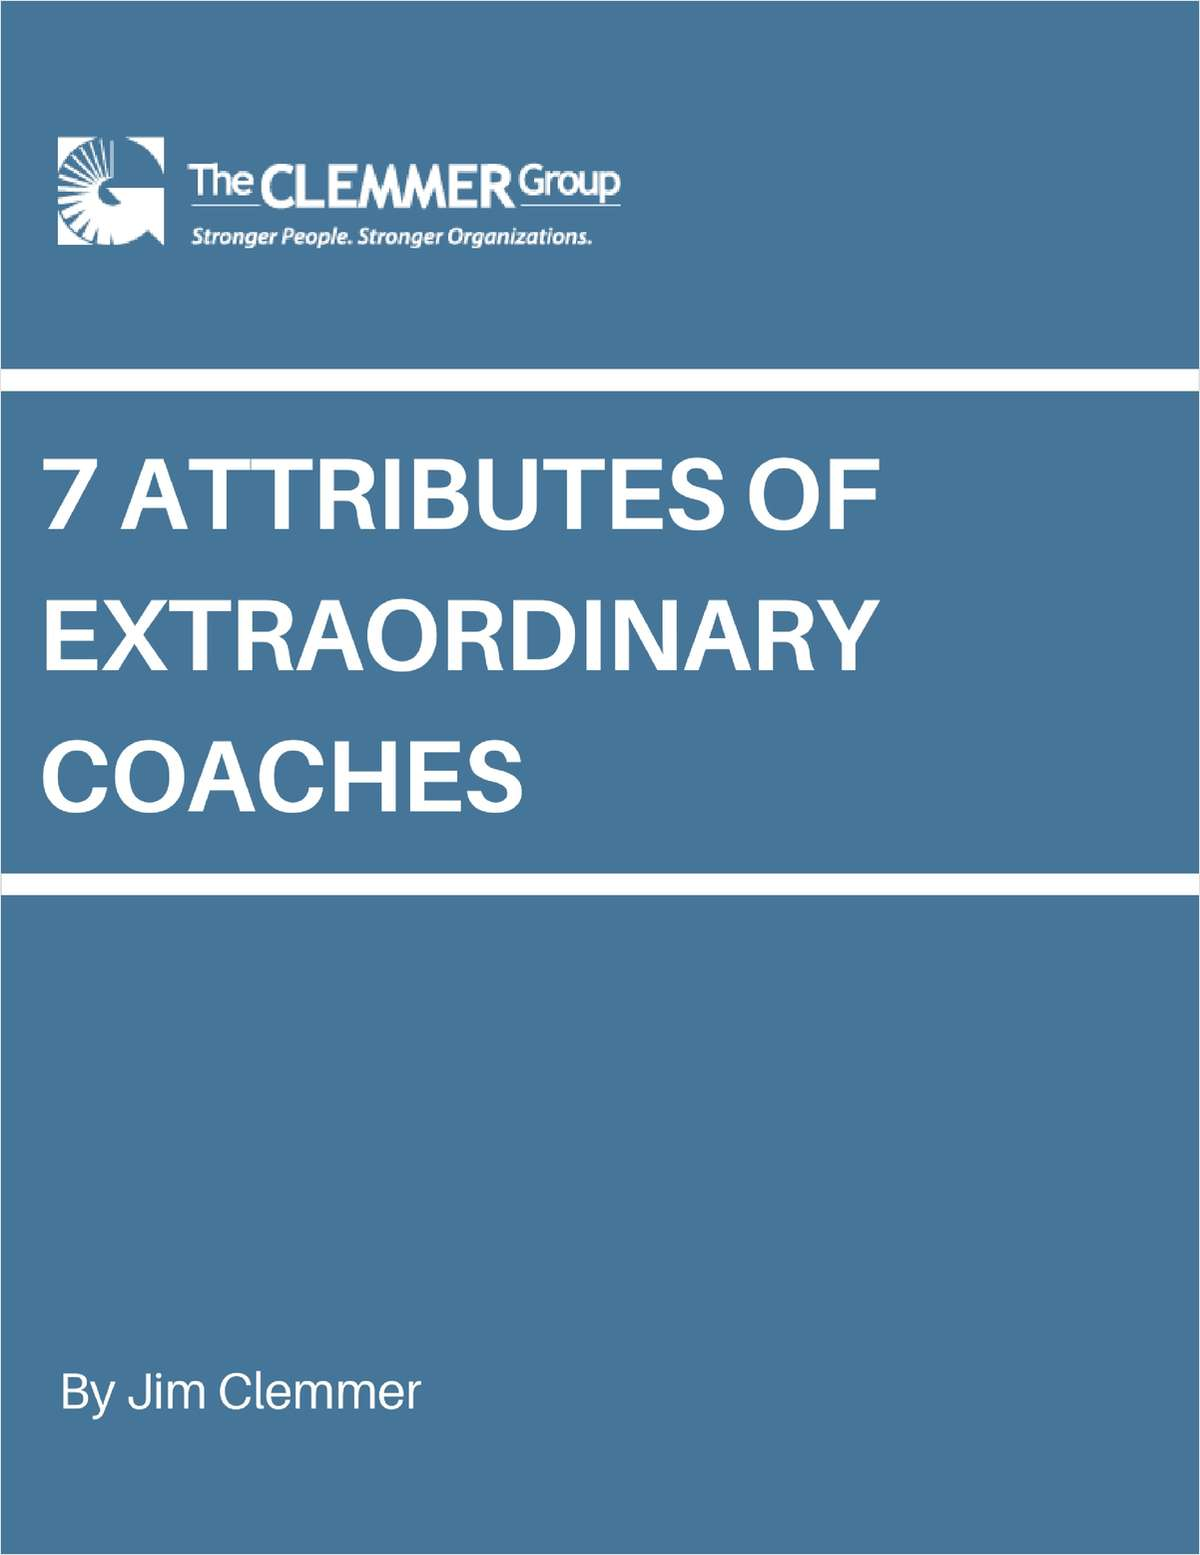 7 Attributes of Extraordinary Coaches